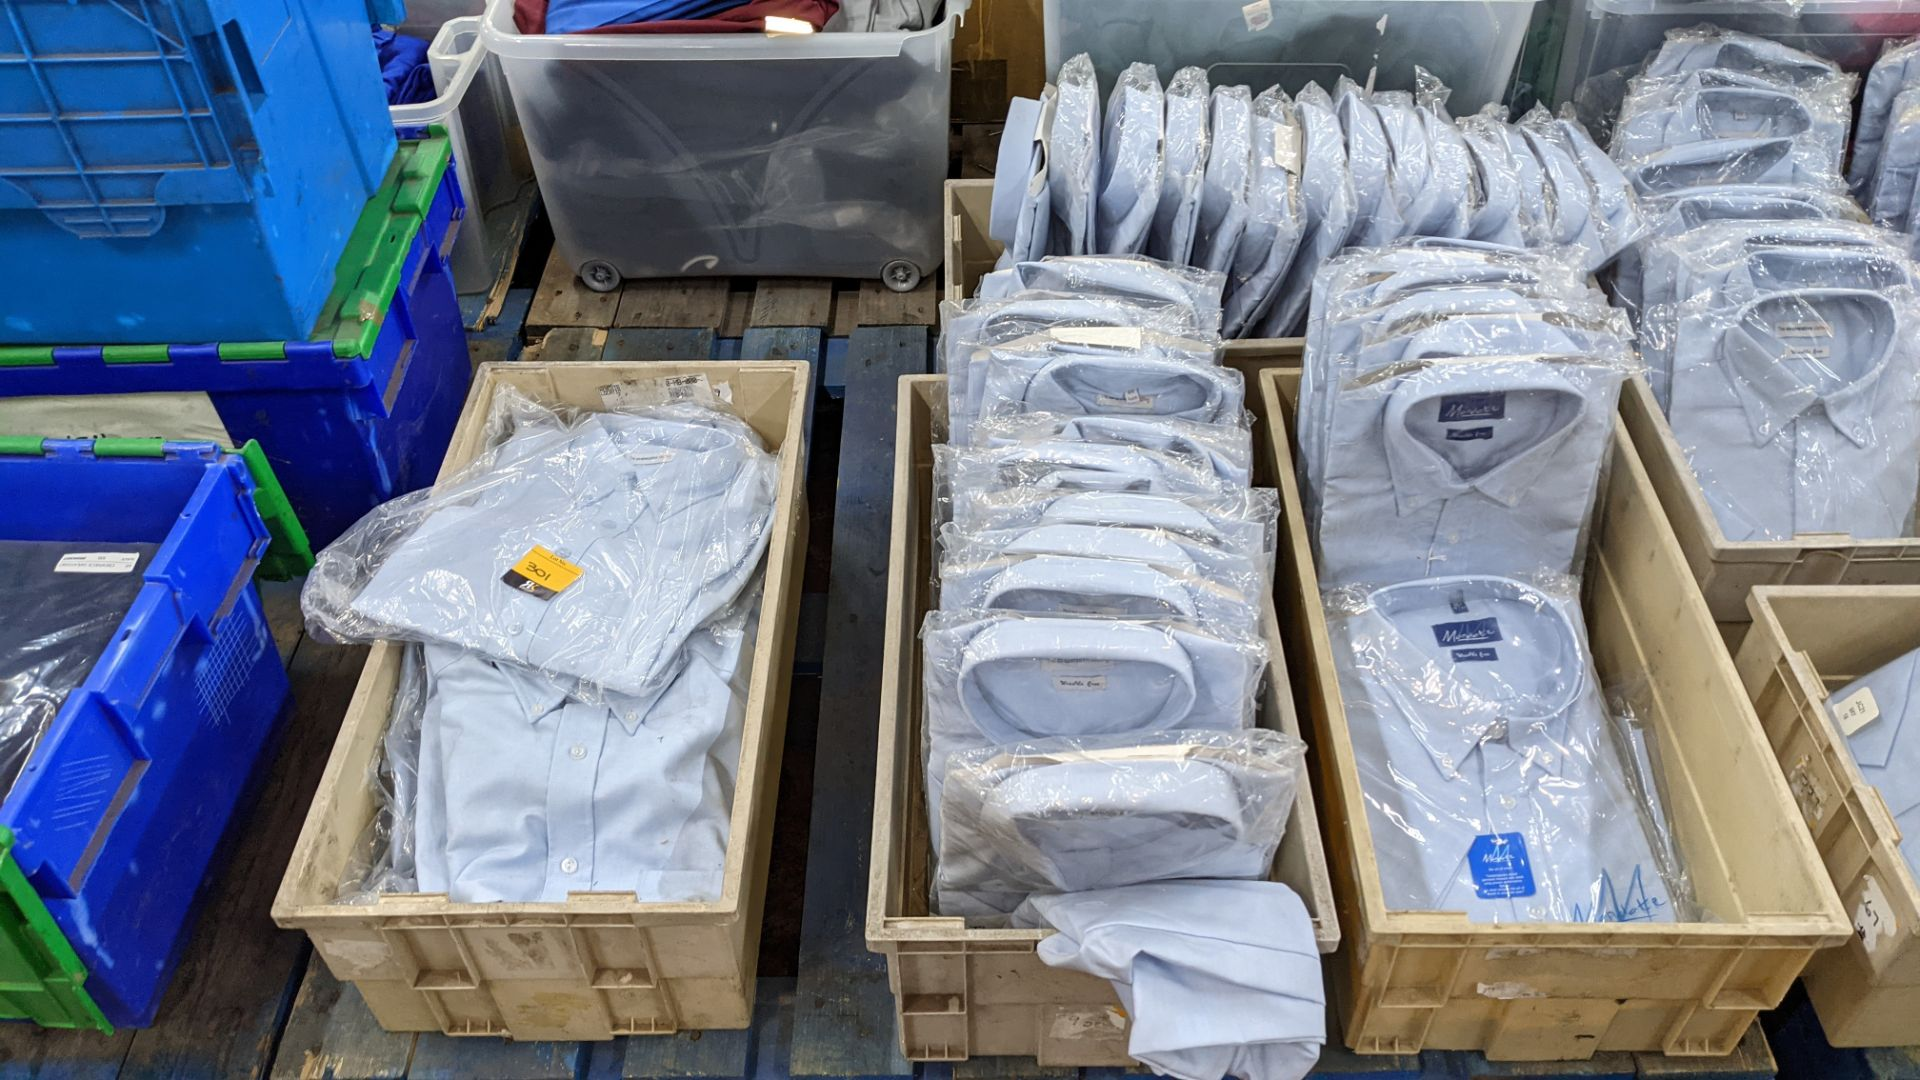 Approx 54 off blue shirts in assorted styles - the contents of 4 crates. NB crates excluded